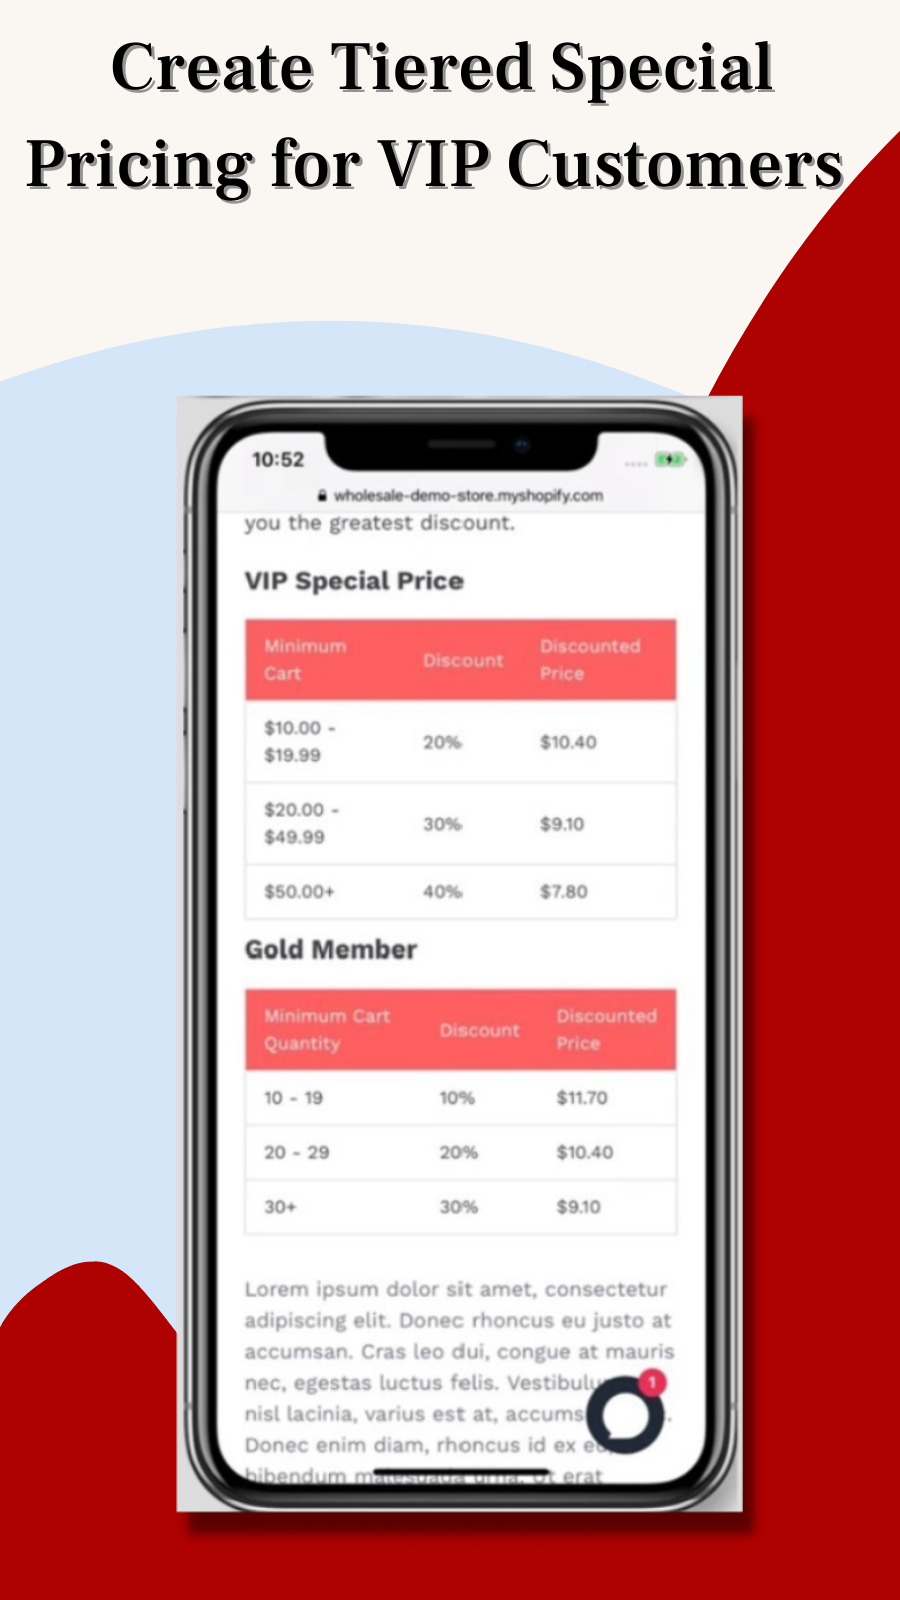 Create Tiered Special Pricing for VIP Customers